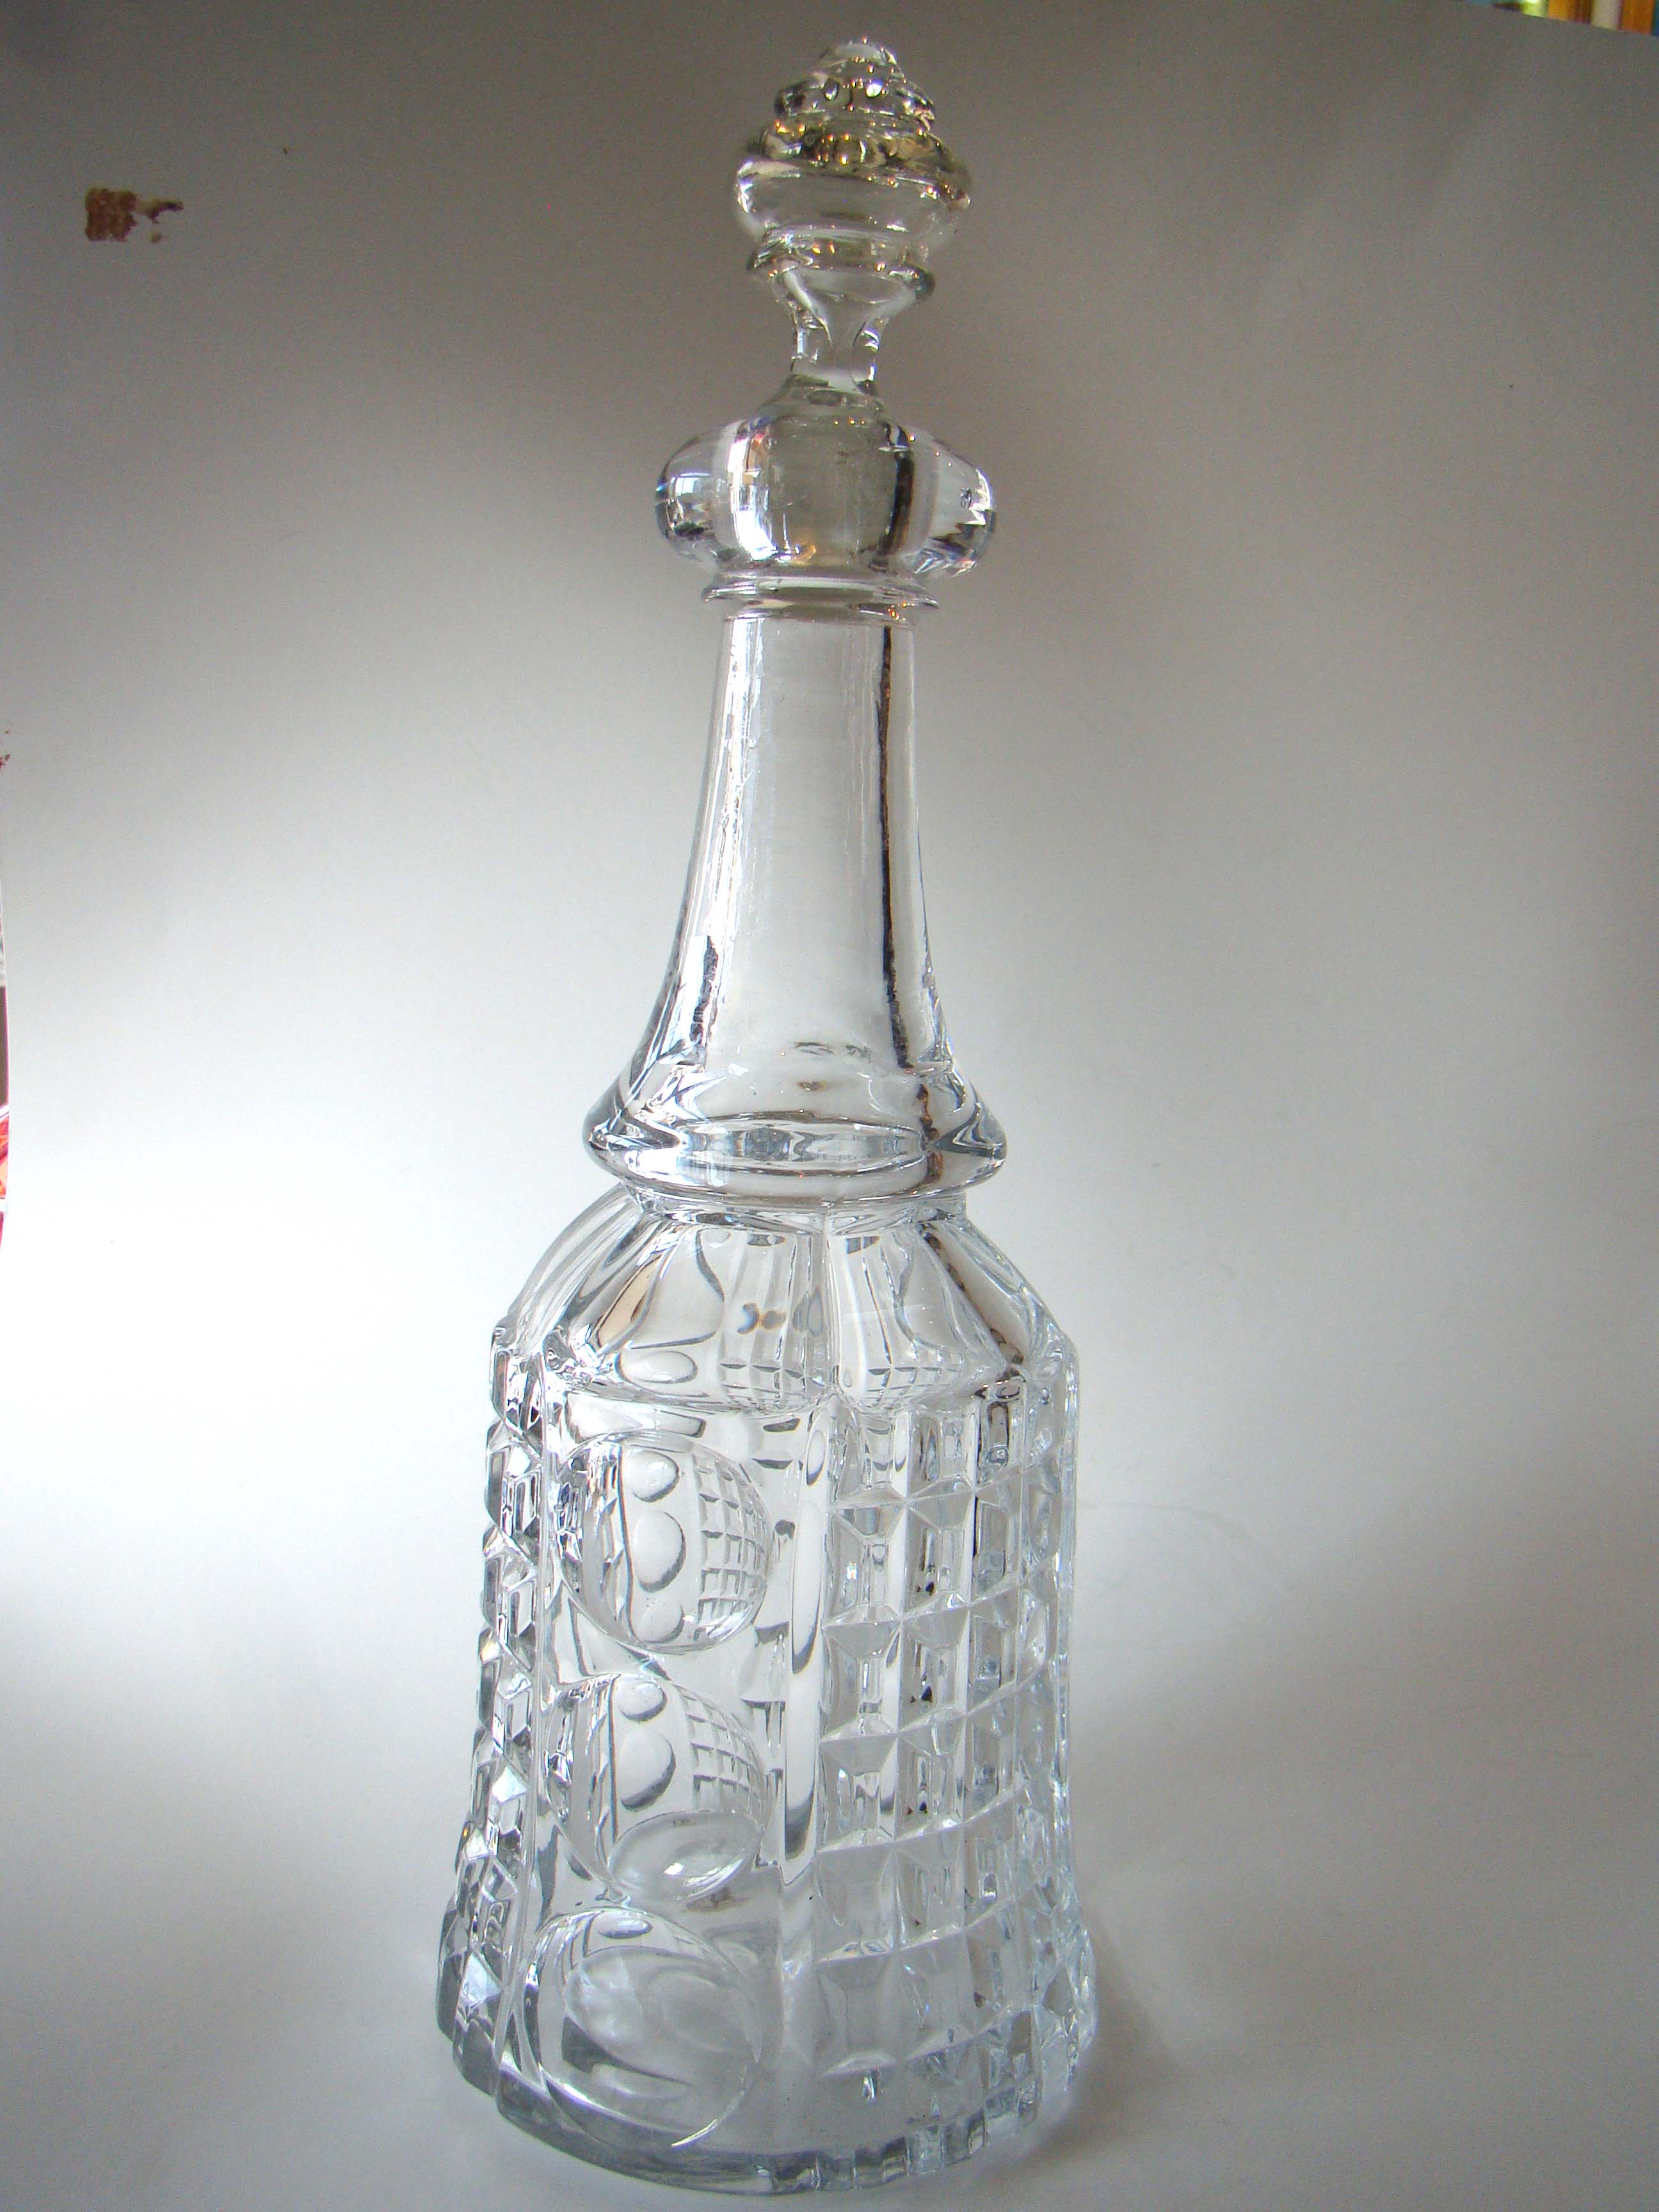 click to view detailed description of A rare antique Sandwich glass